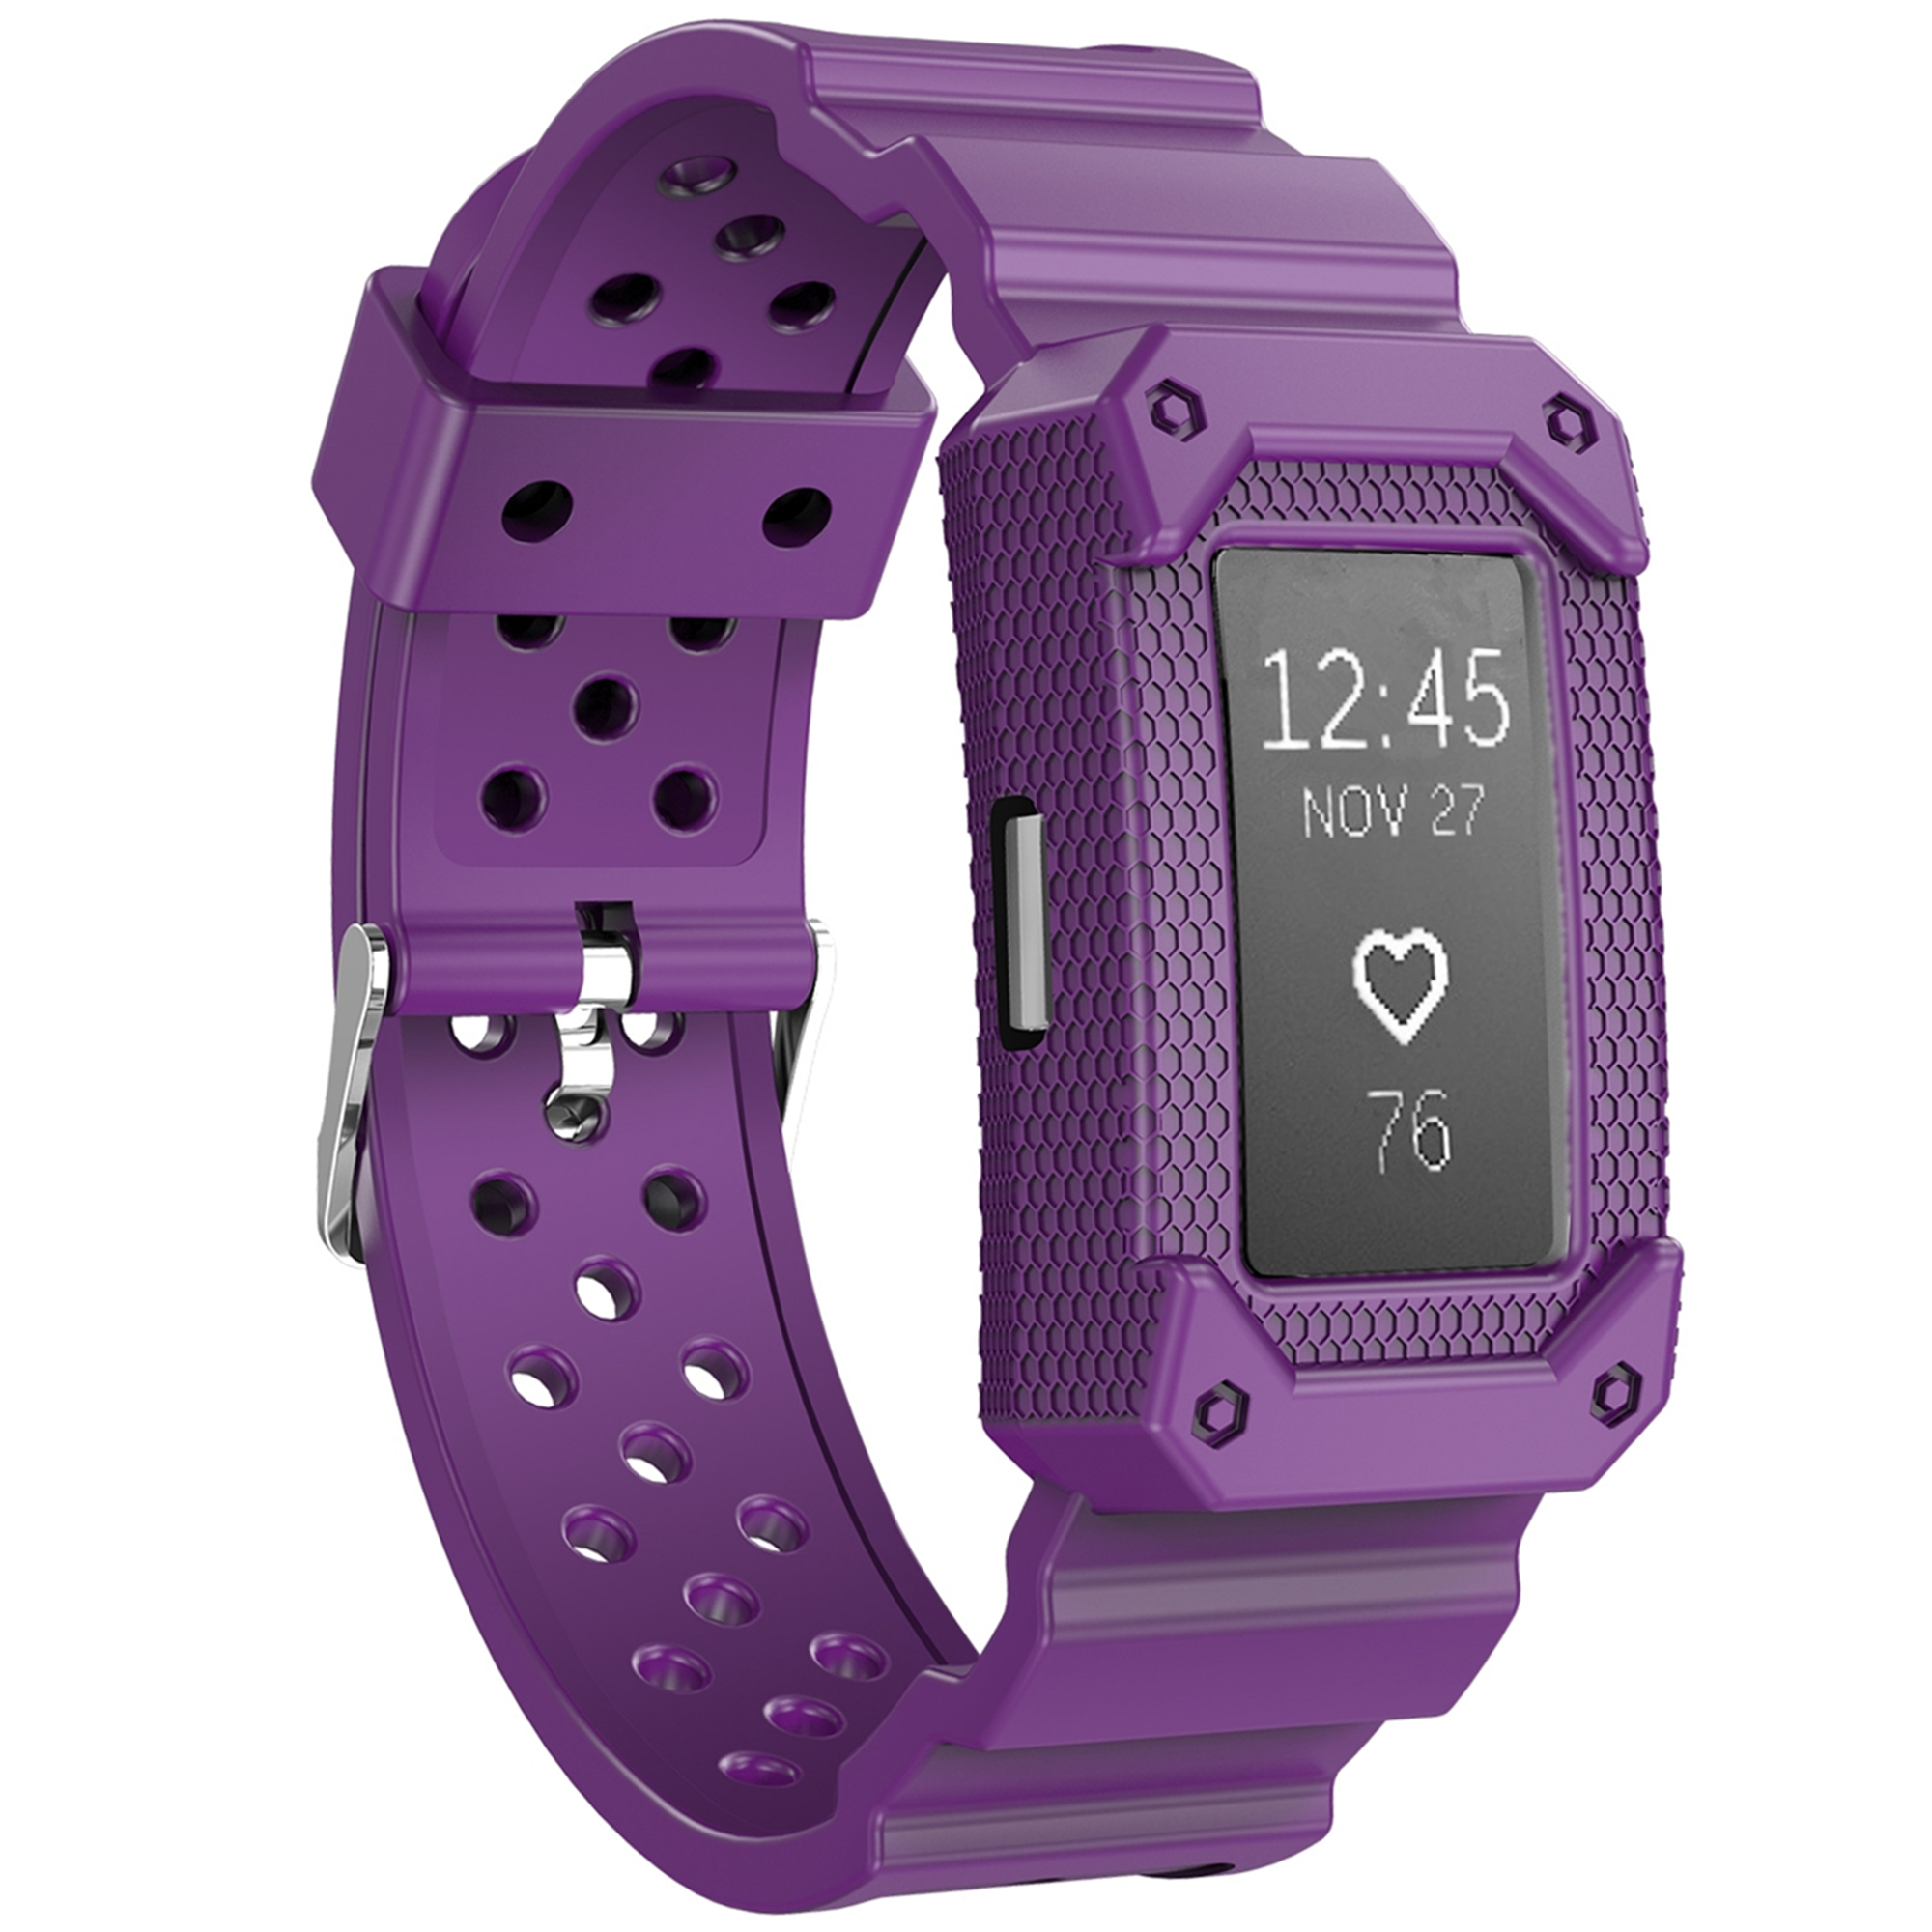 Moretek Silicone Adjustable Replacement Sport Strap Wristband for Fitbit Charge 2 (Purple)